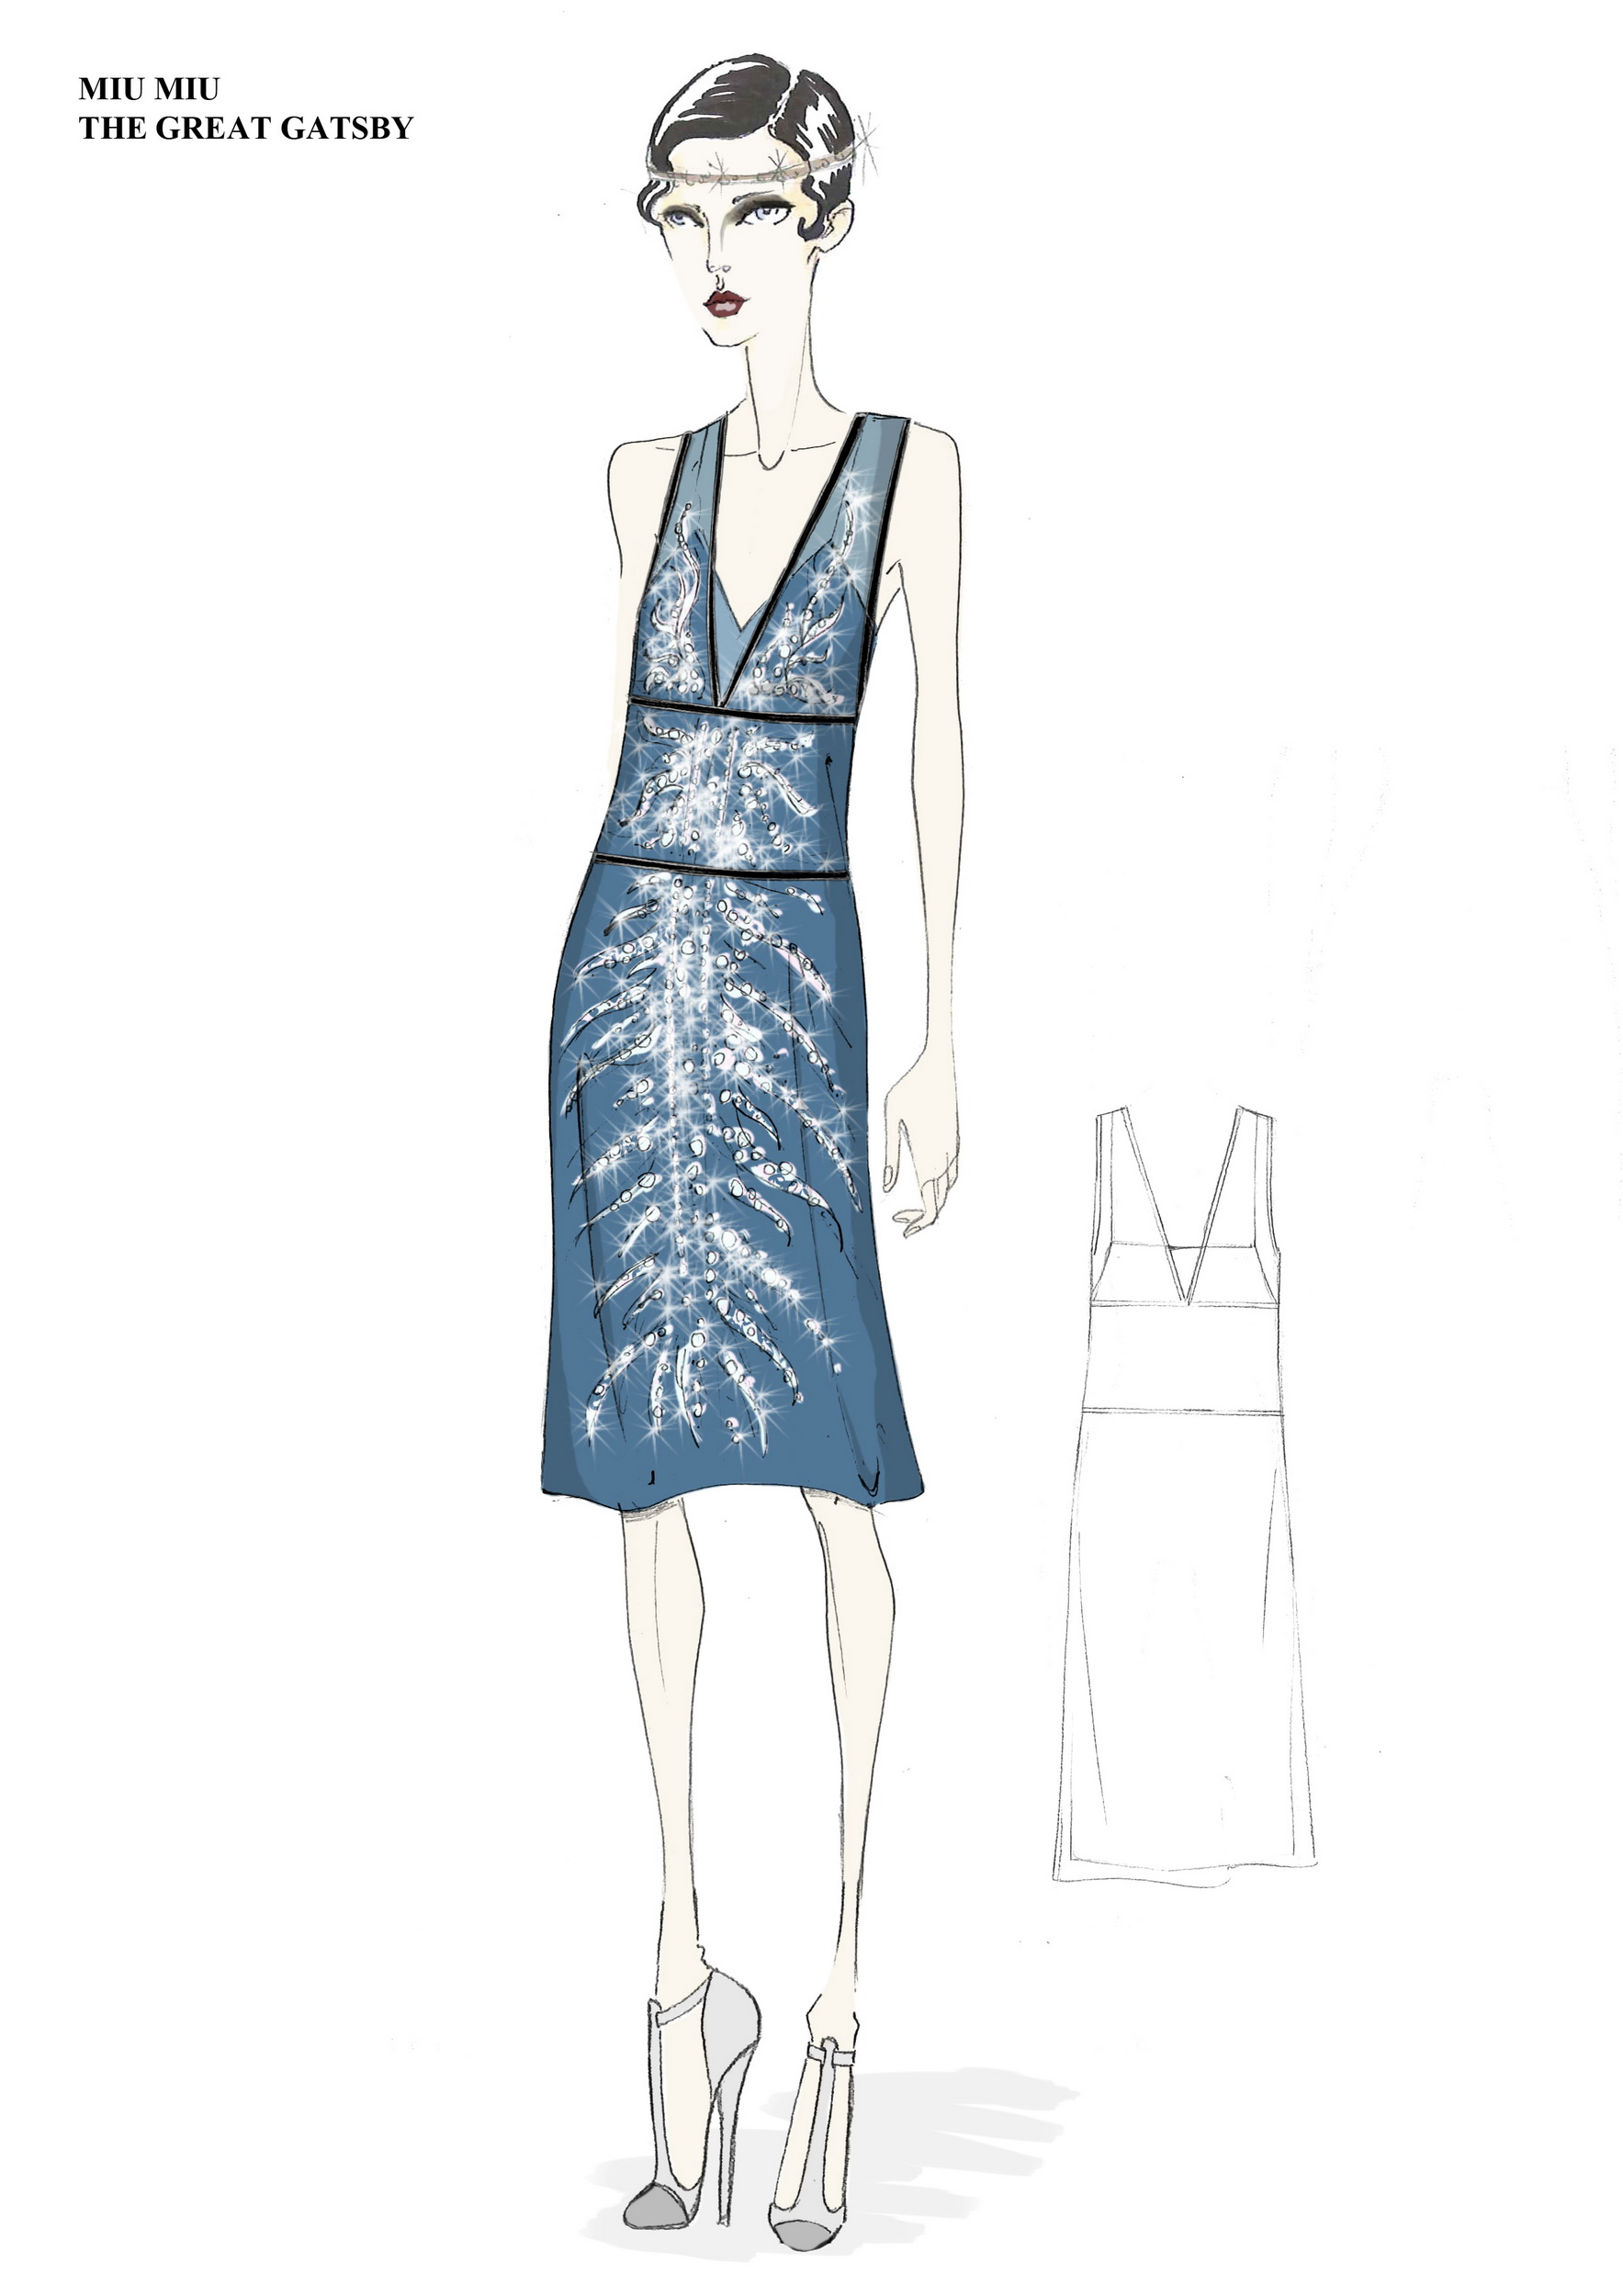 MIU MIU_THE GREAT GATSBY_4